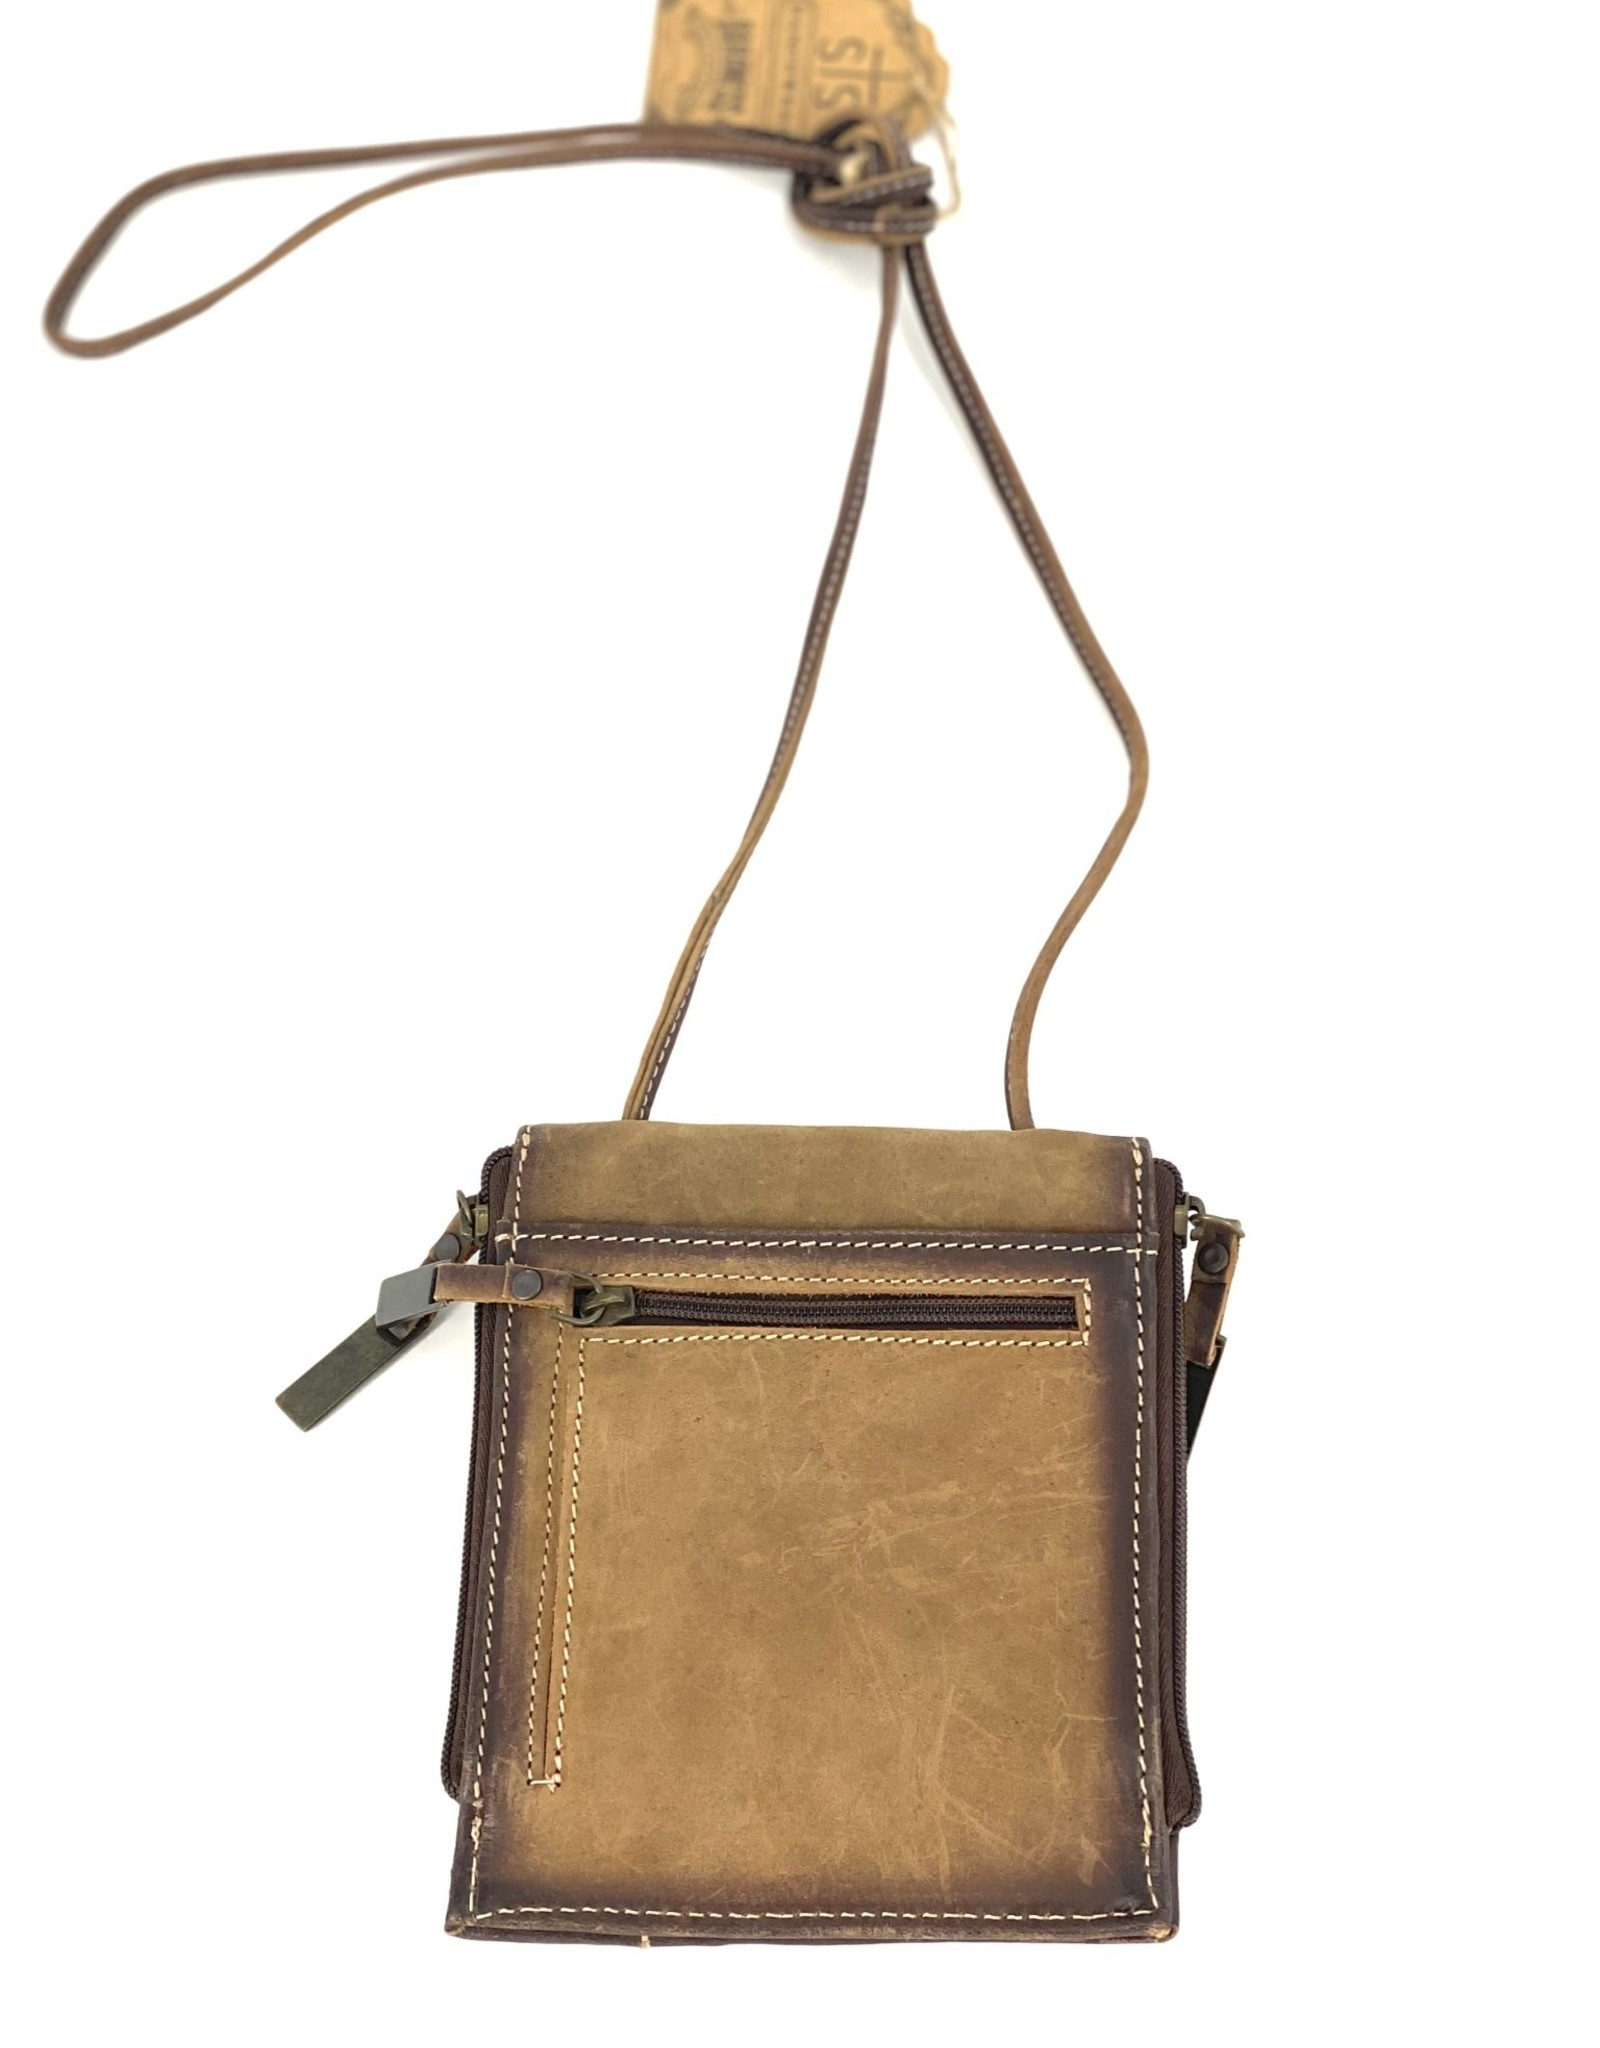 PURSE STS34035 BAG BARONESS EURO CROSS BODY LEATHER